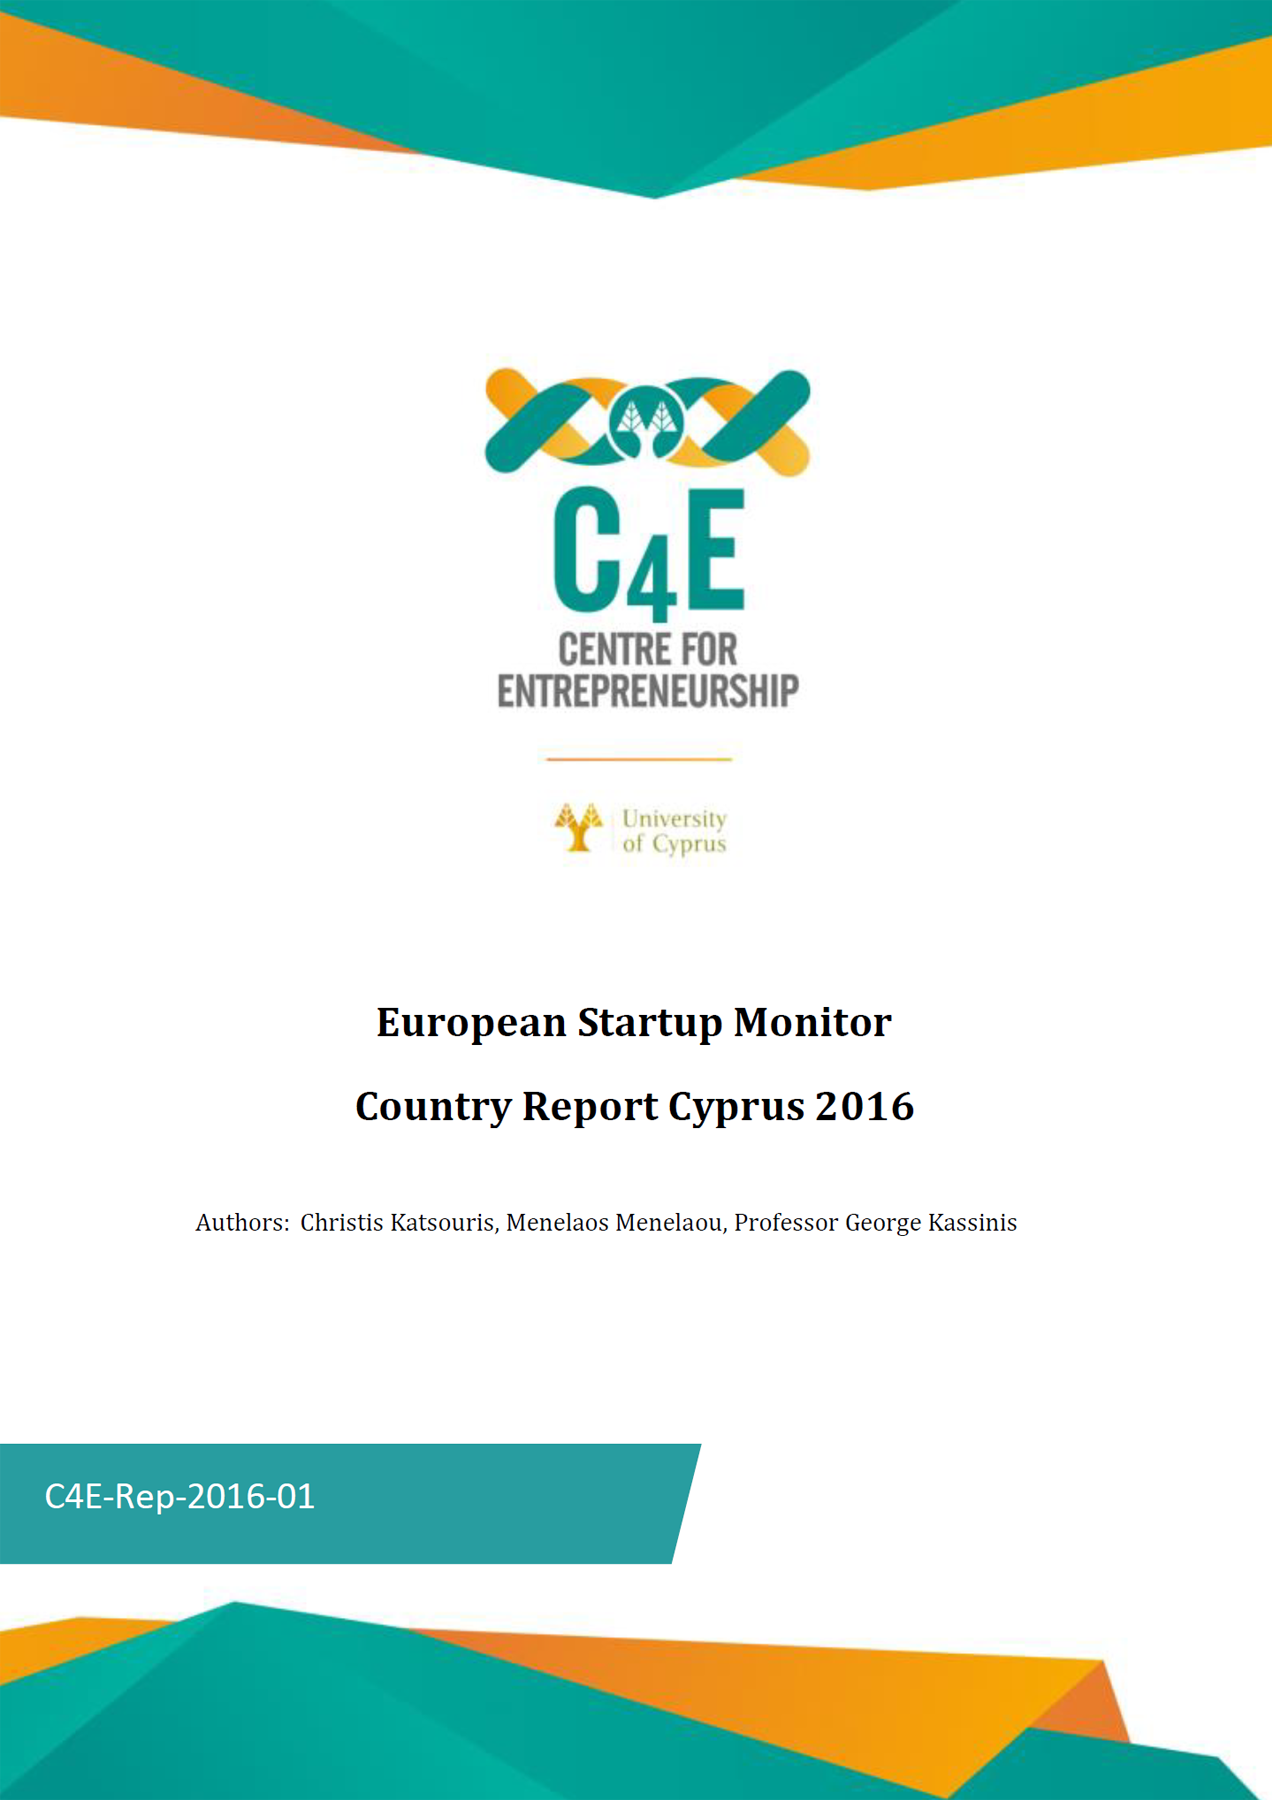 European Startup Monitor - Country Report Cyprus 2016